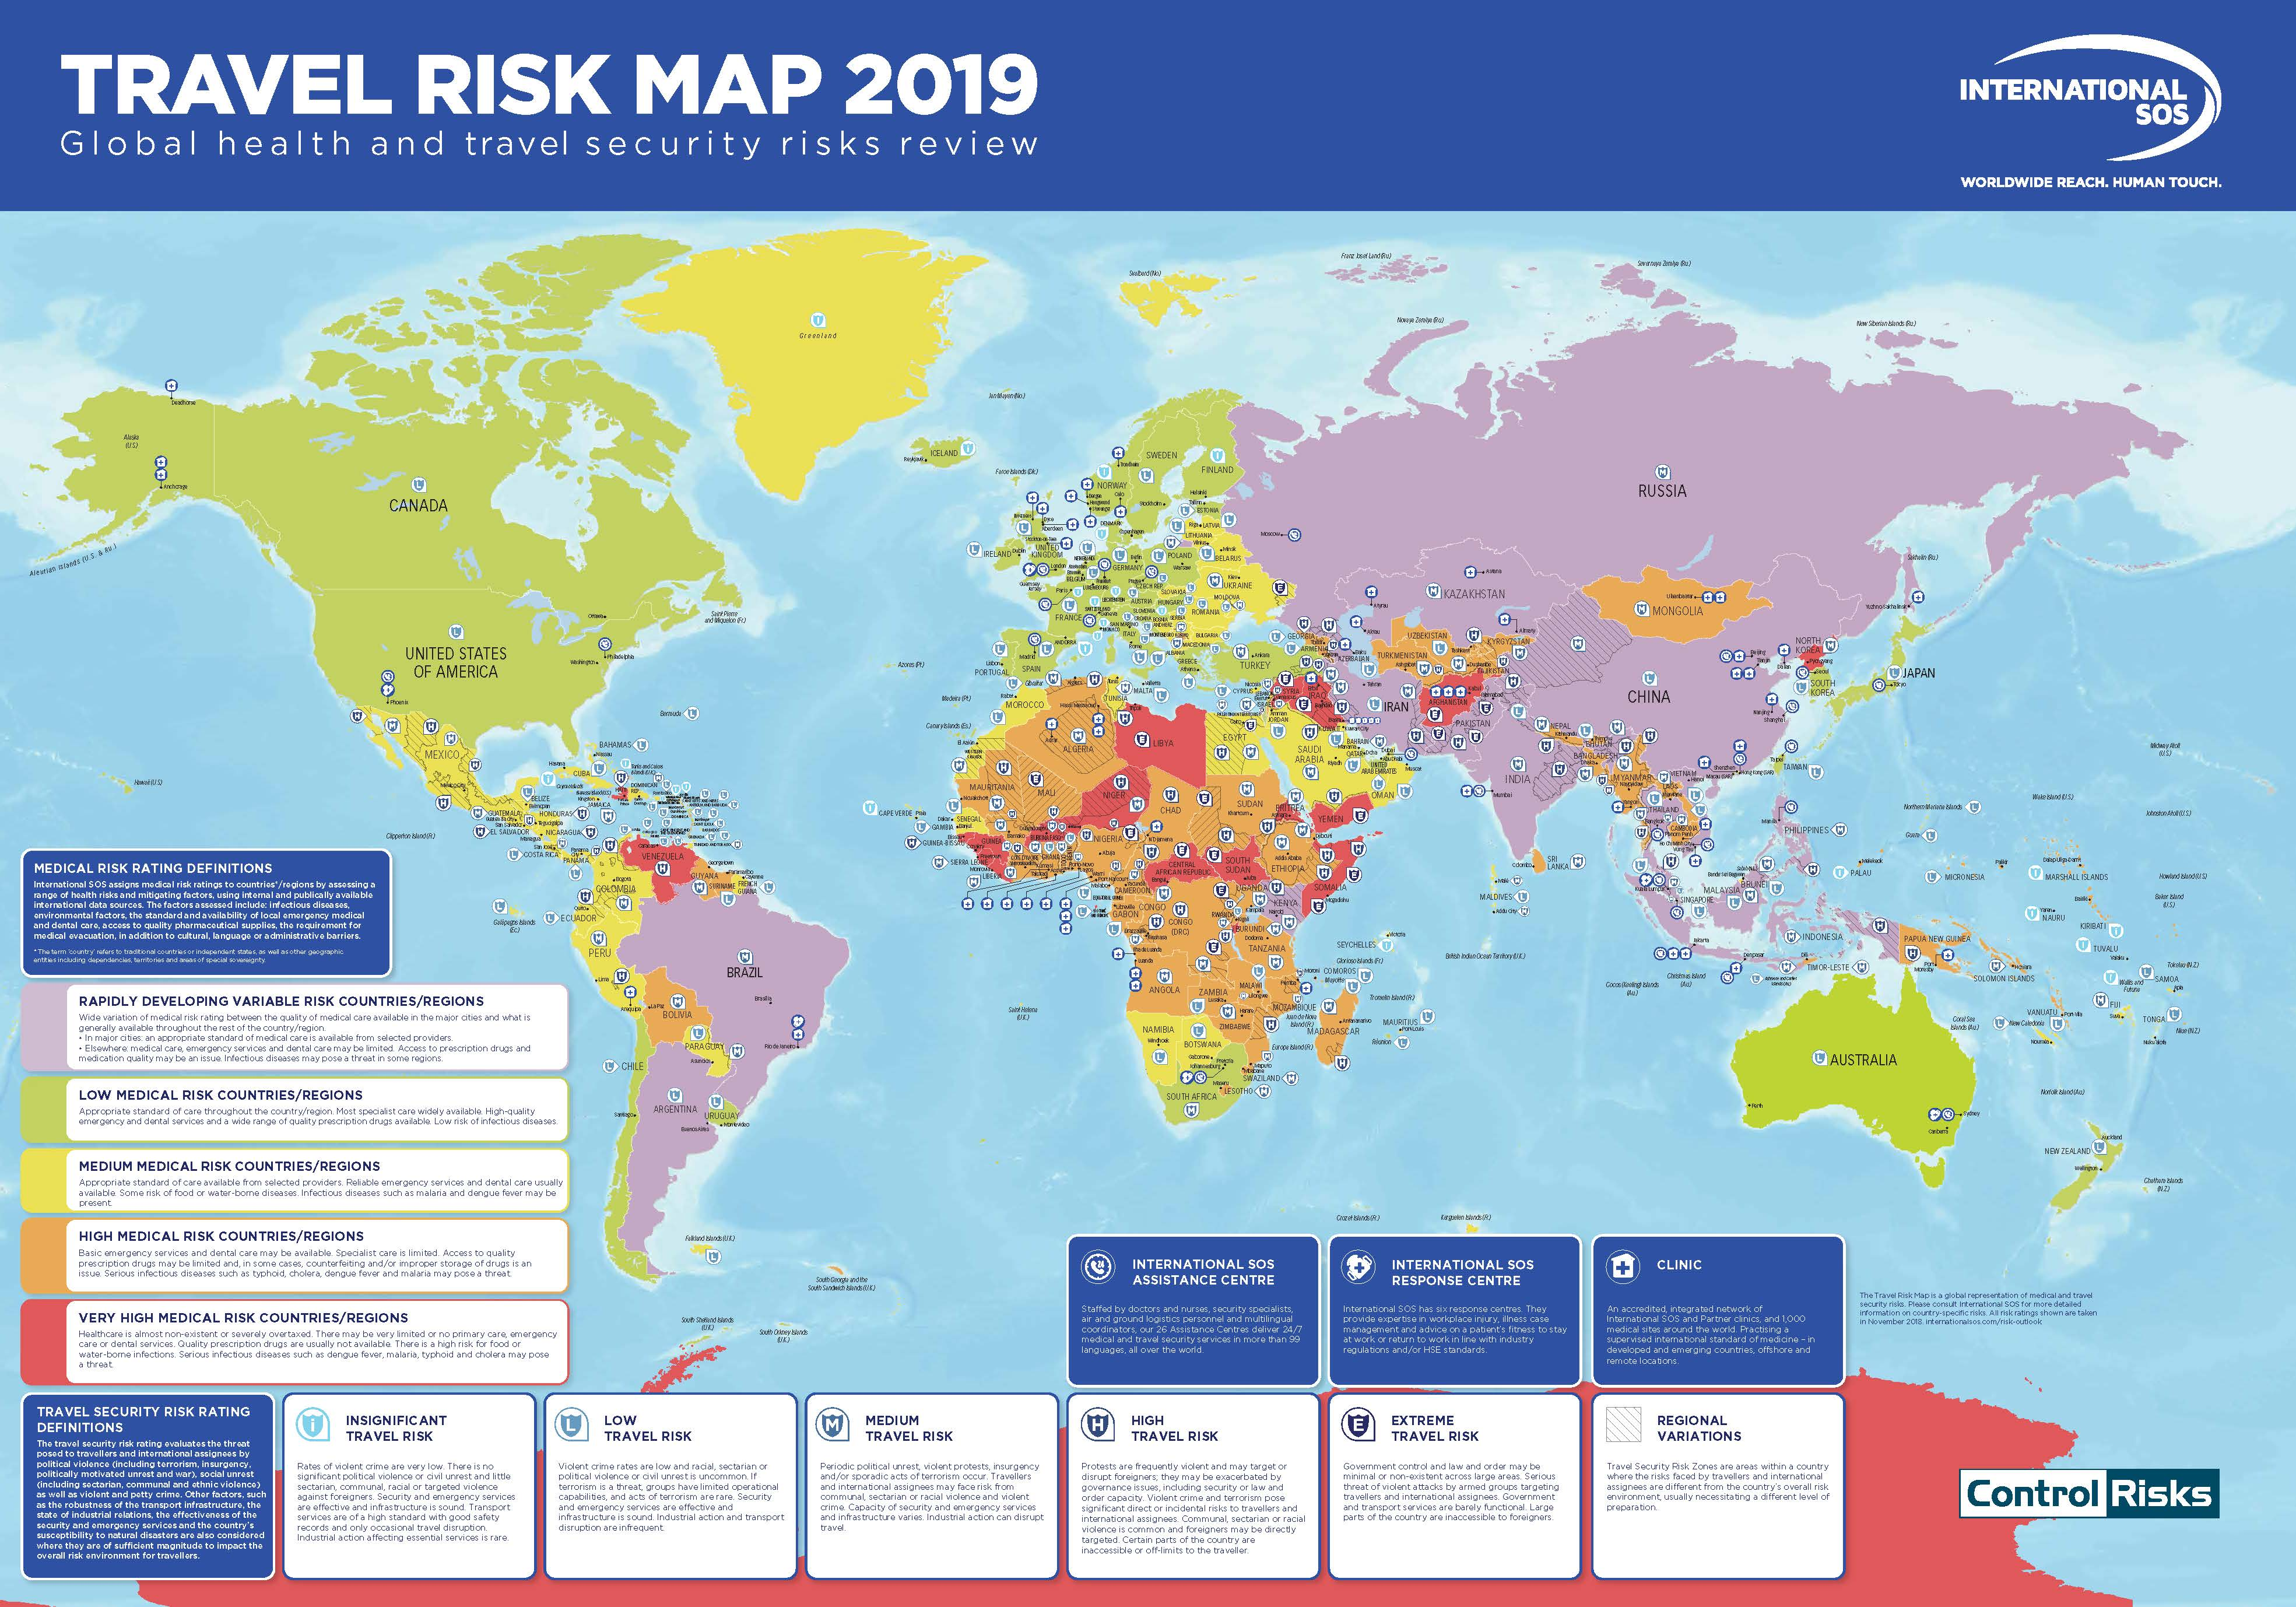 Travel Blog With Map Travel Risk Map 2019 Iran As Safe As Uk Canada Tours Of